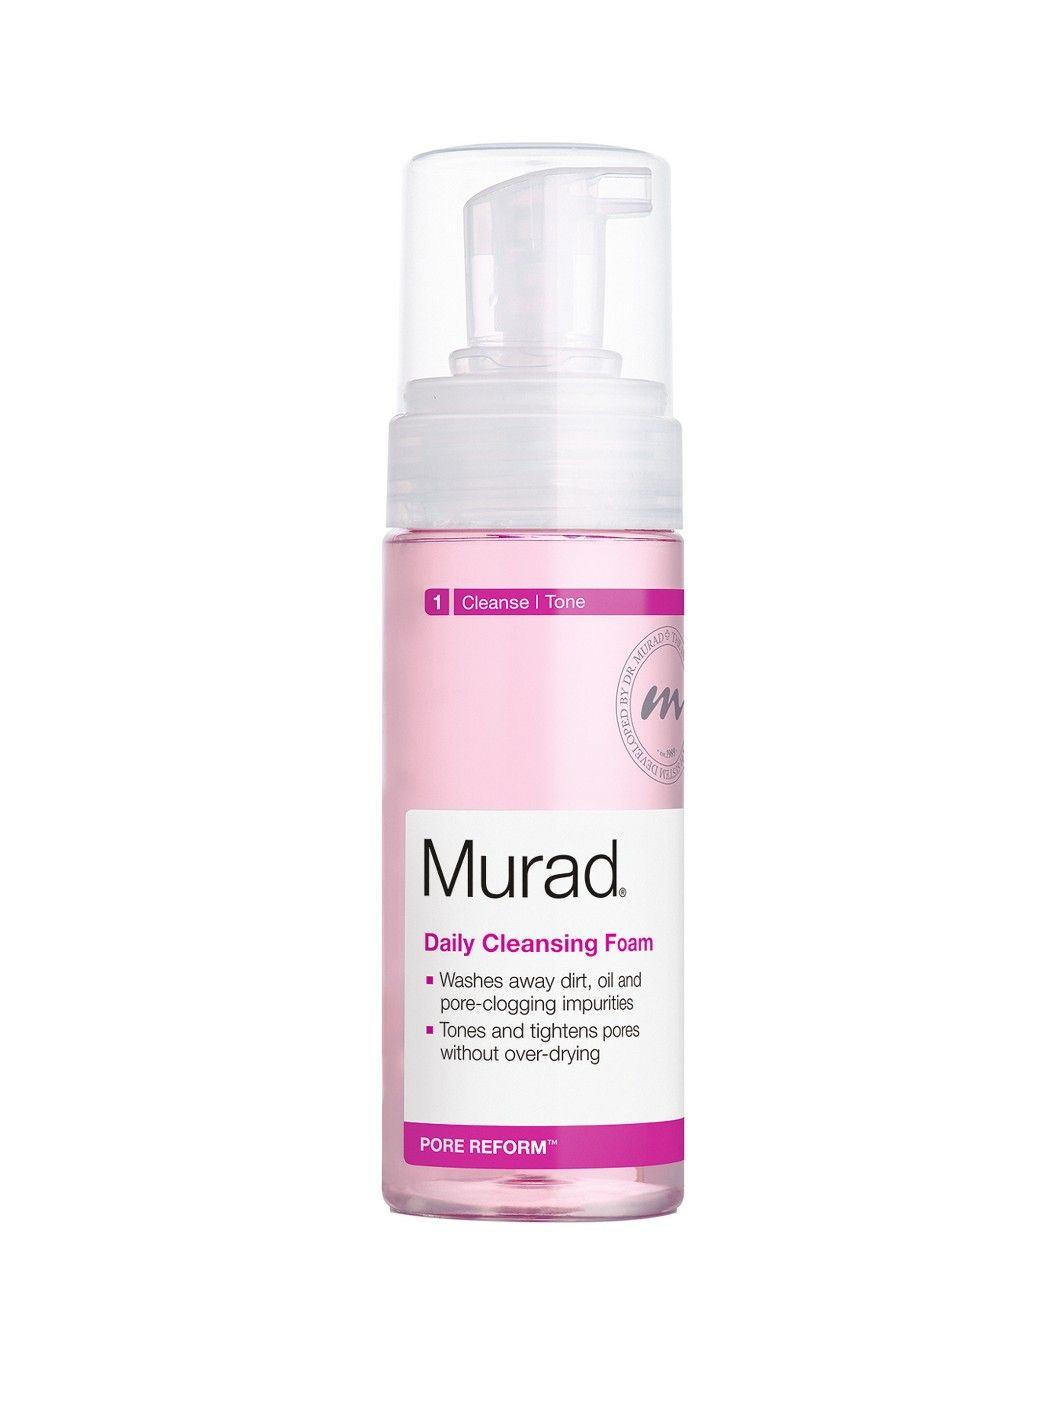 Murad daily cleansing foam good for blackheads and large